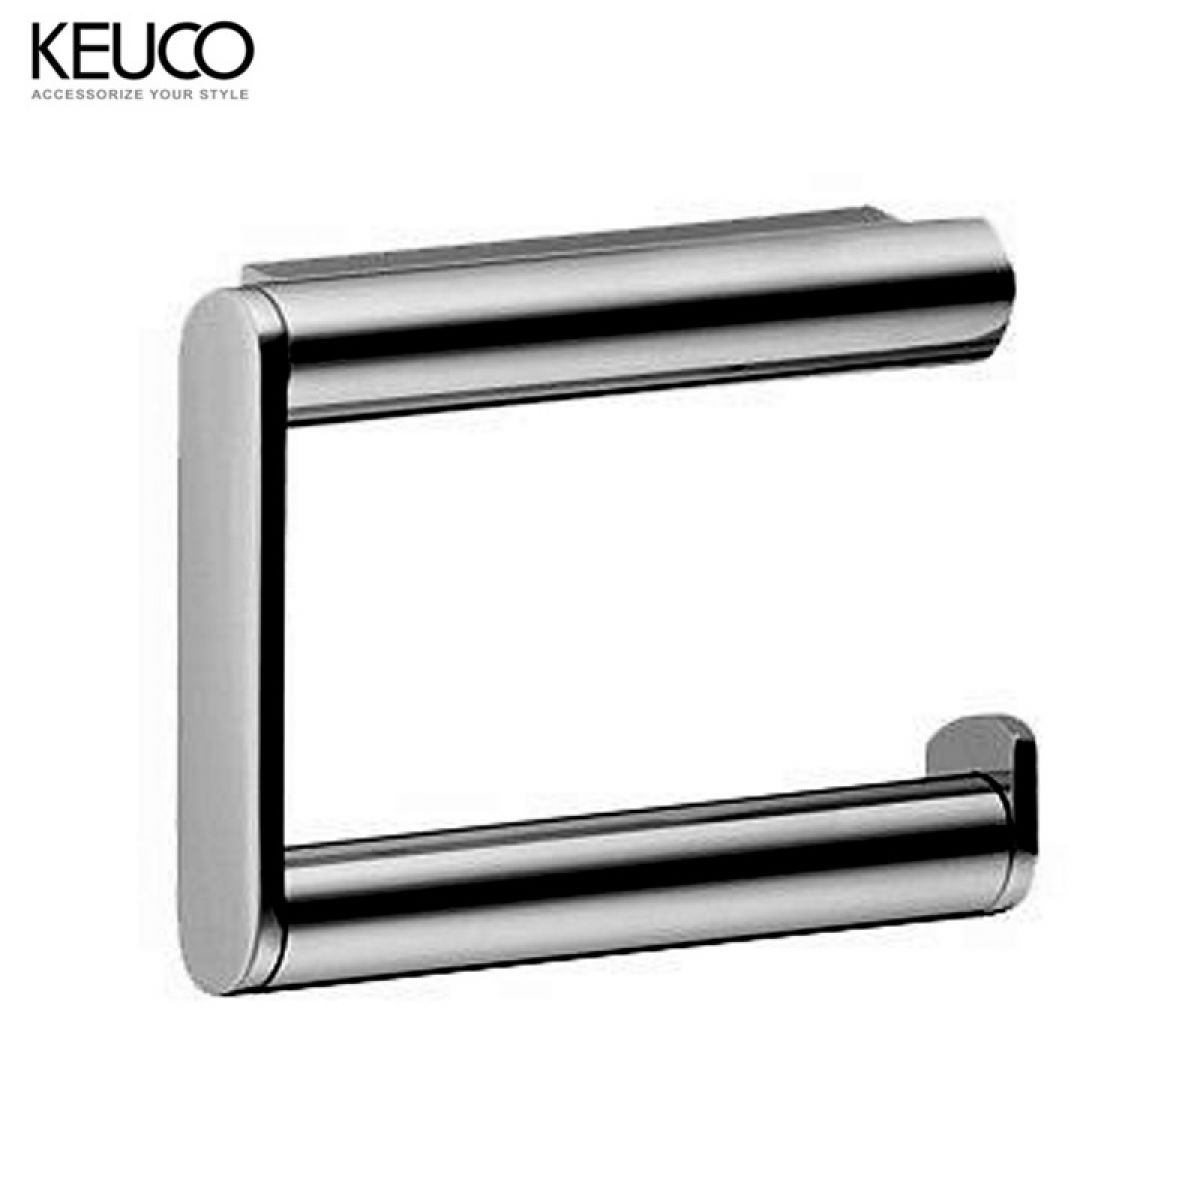 Keuco Plan Toilet Paper Holder